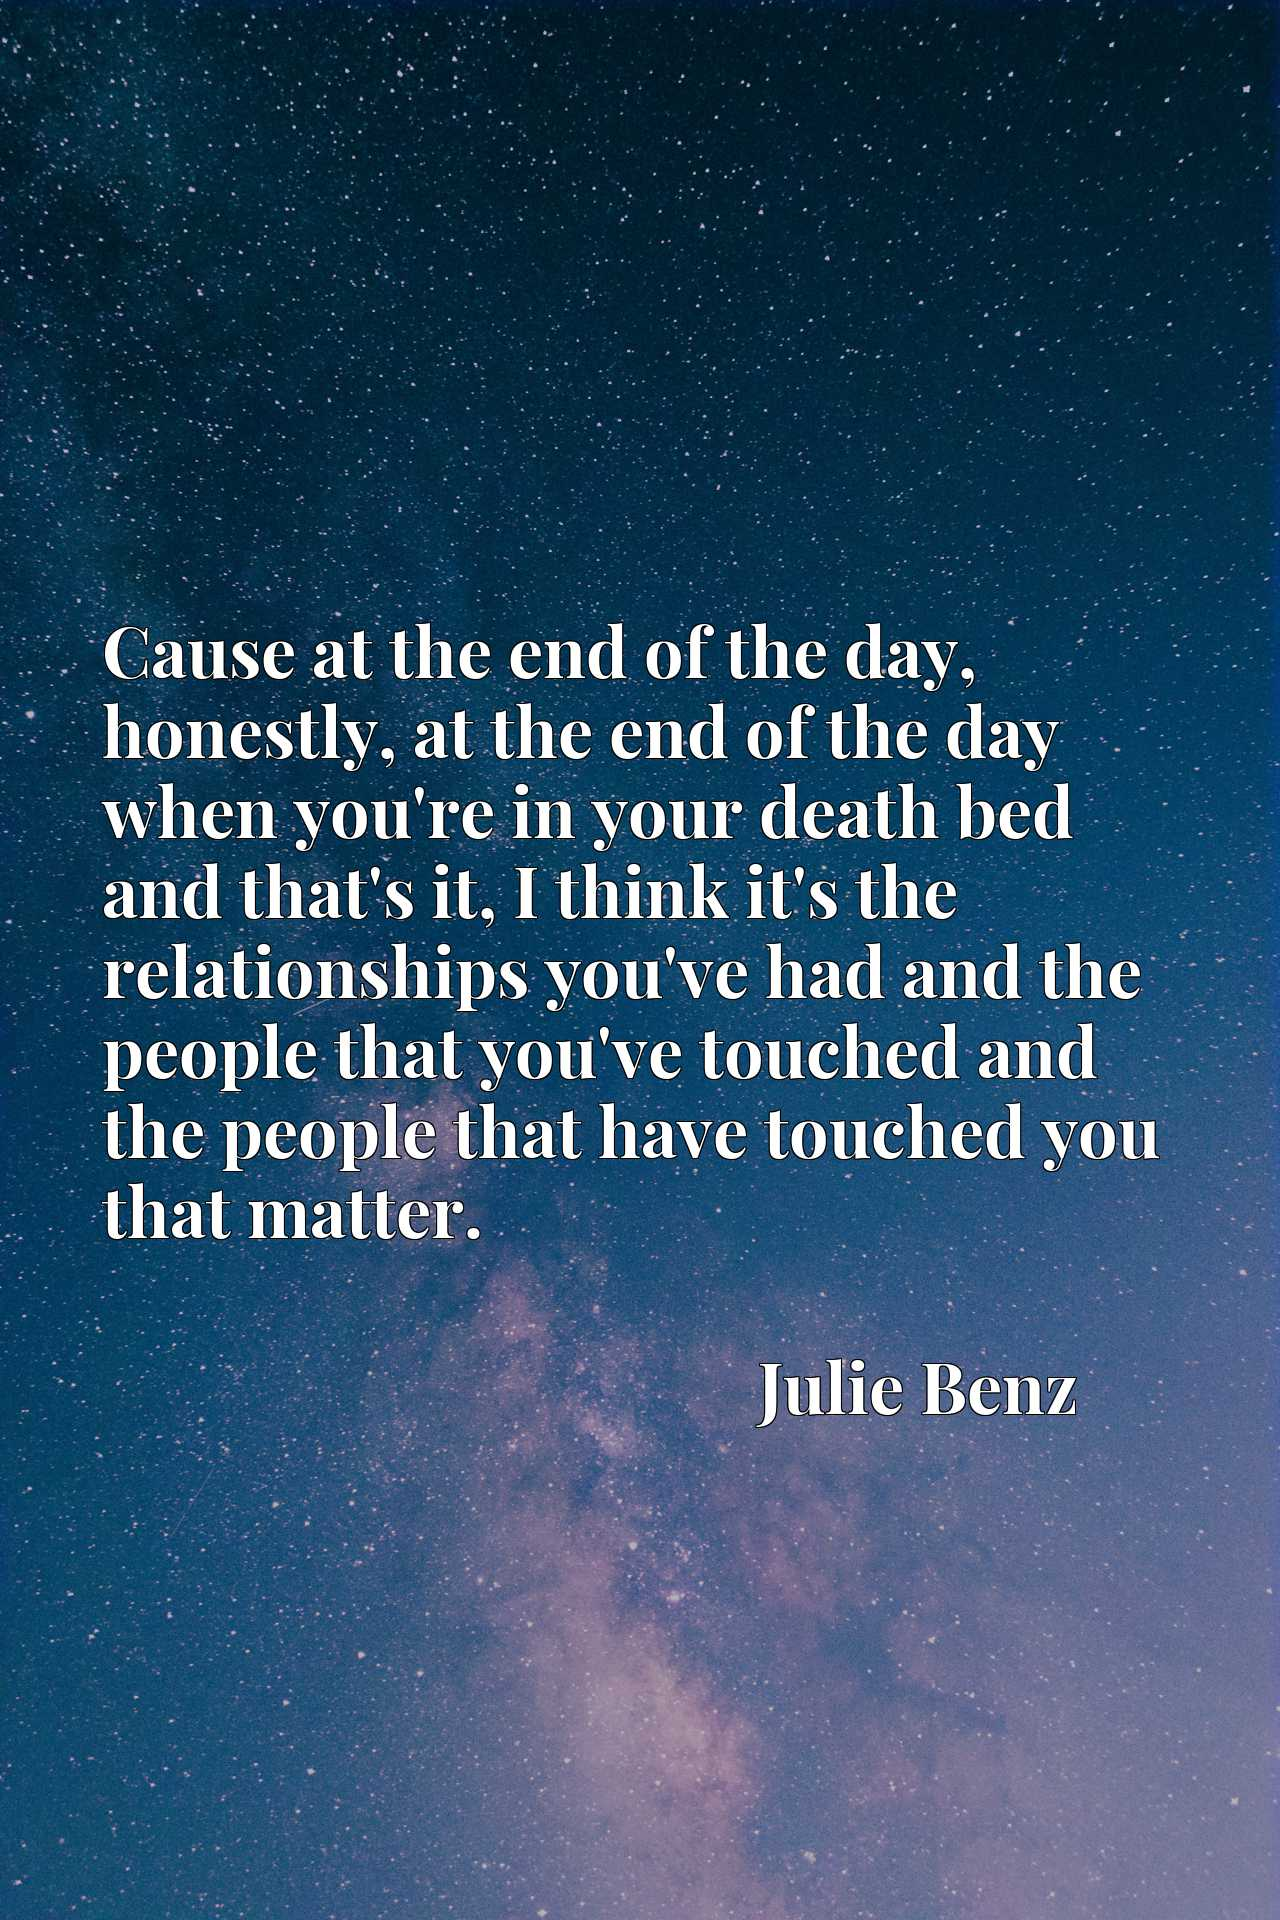 Cause at the end of the day, honestly, at the end of the day when you're in your death bed and that's it, I think it's the relationships you've had and the people that you've touched and the people that have touched you that matter.